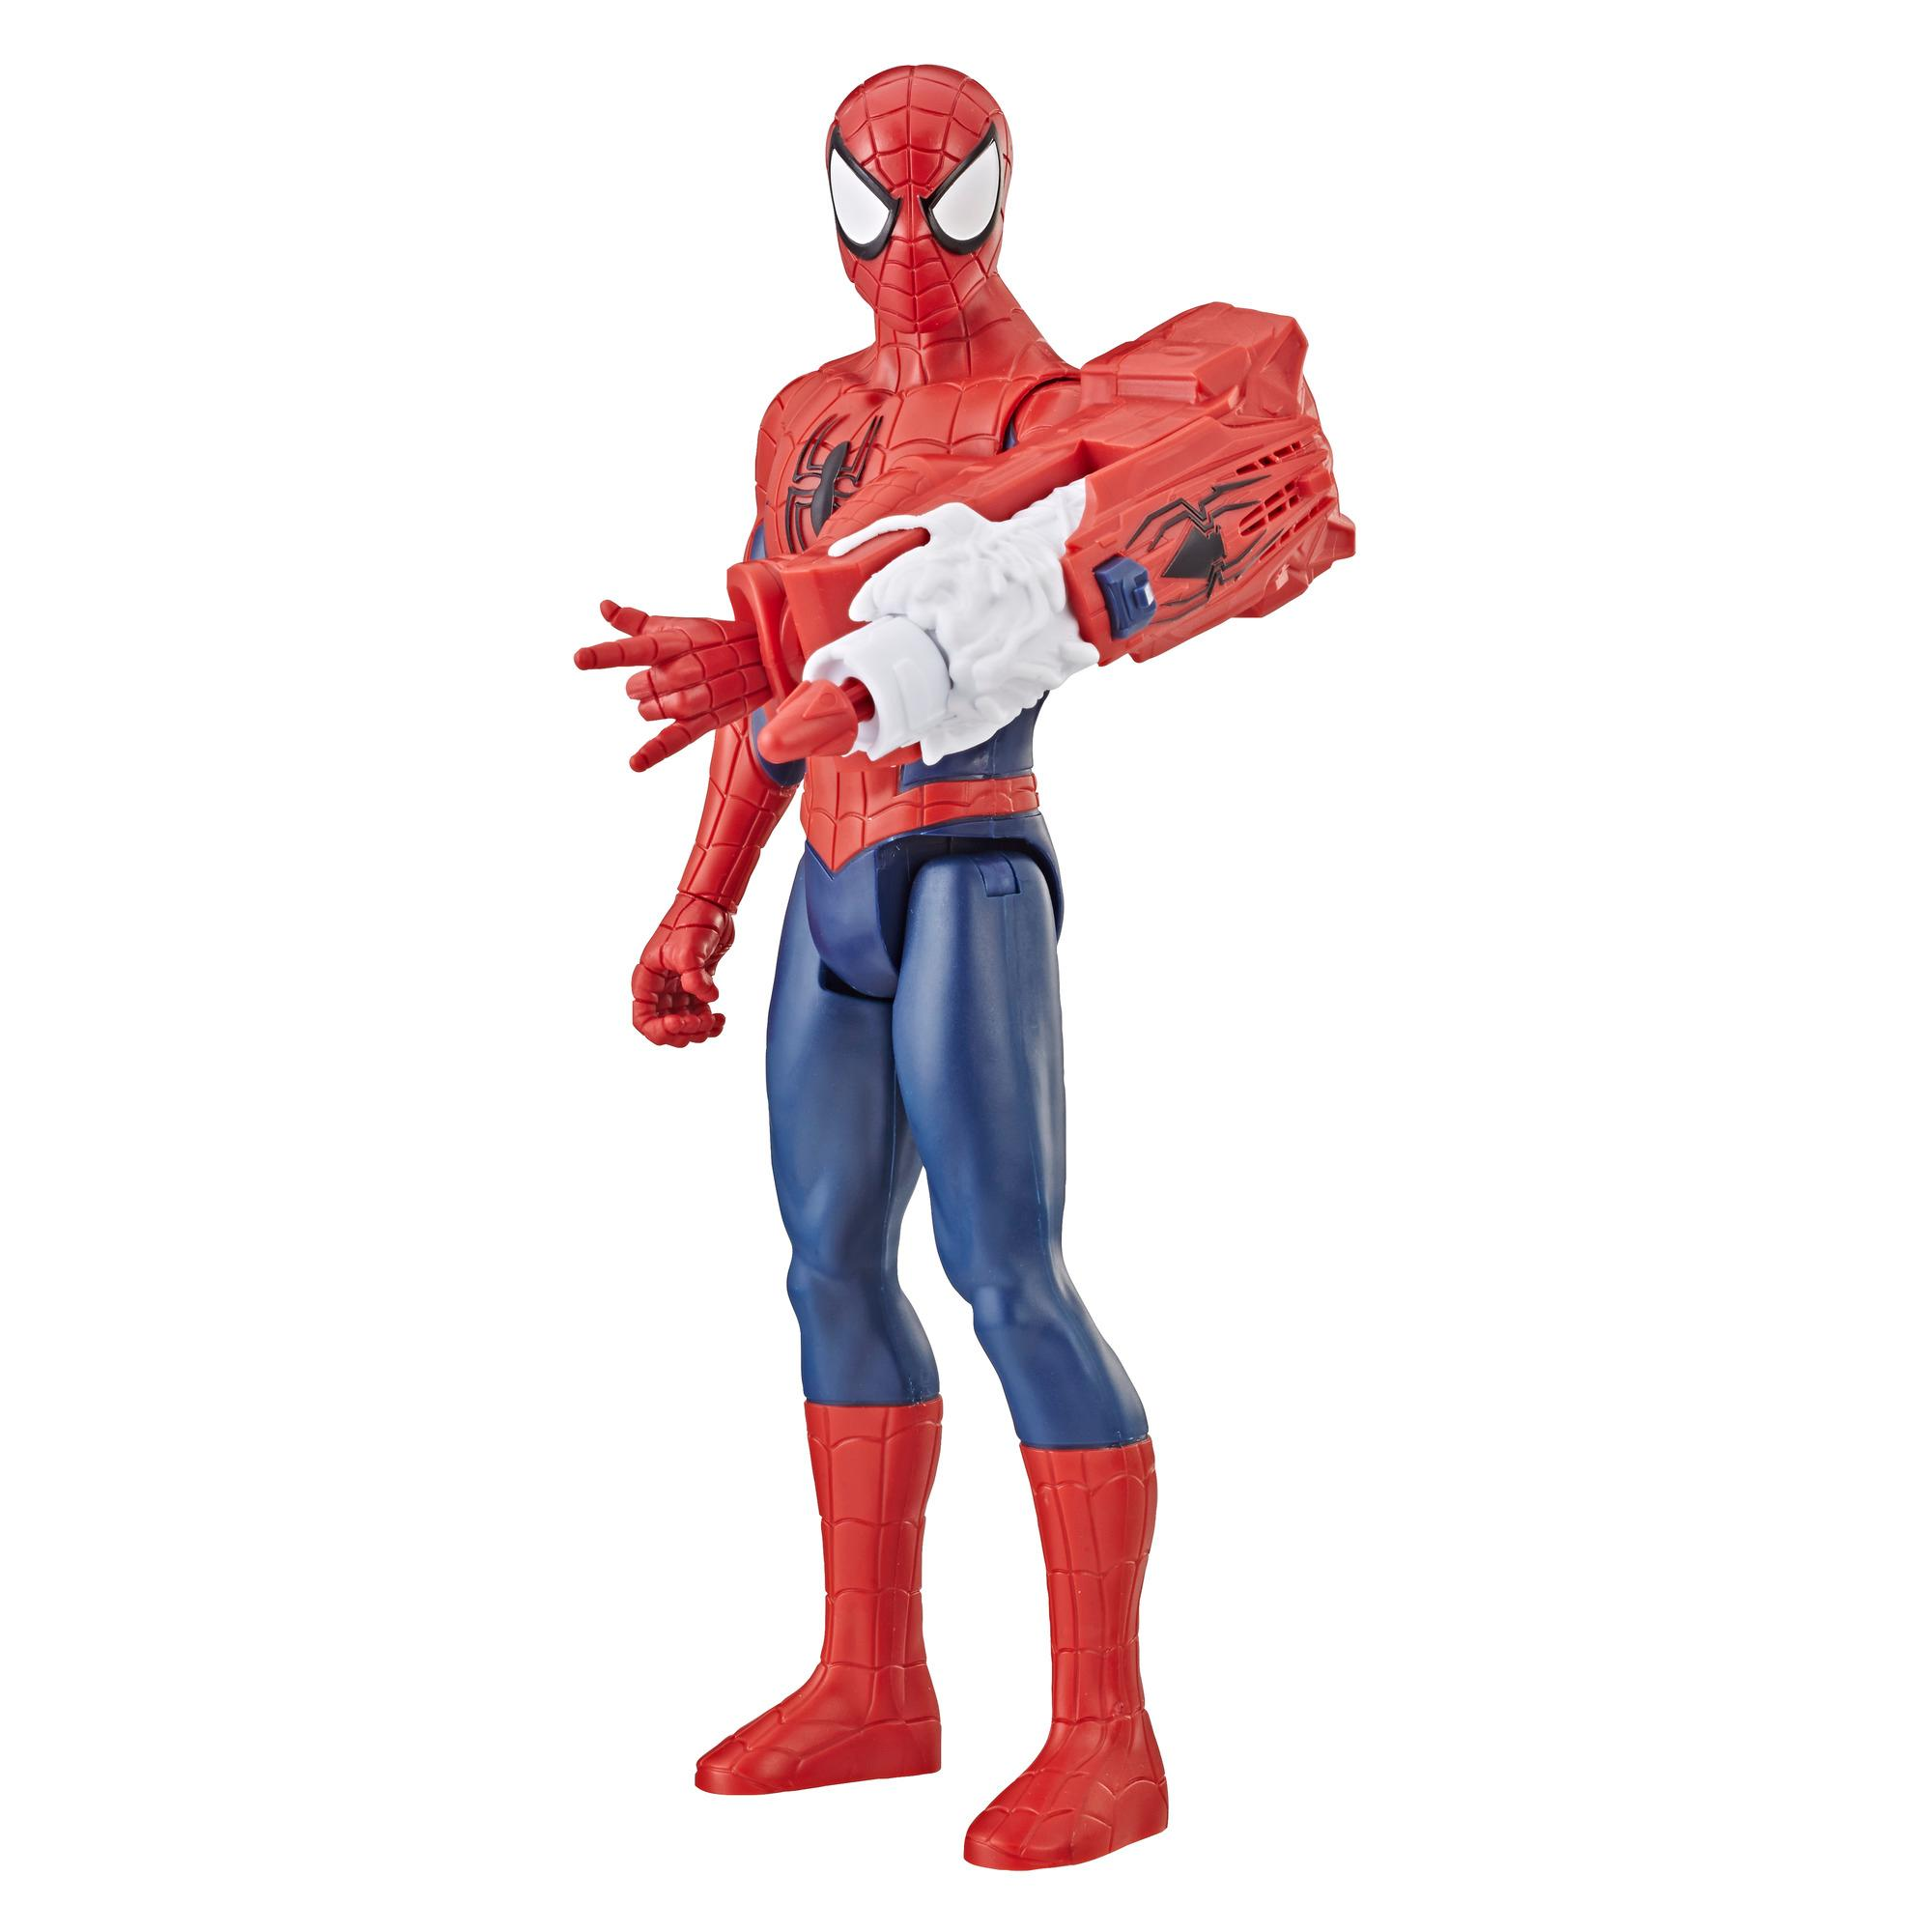 Spider-Man Titan Hero mit Quantum Power Pack